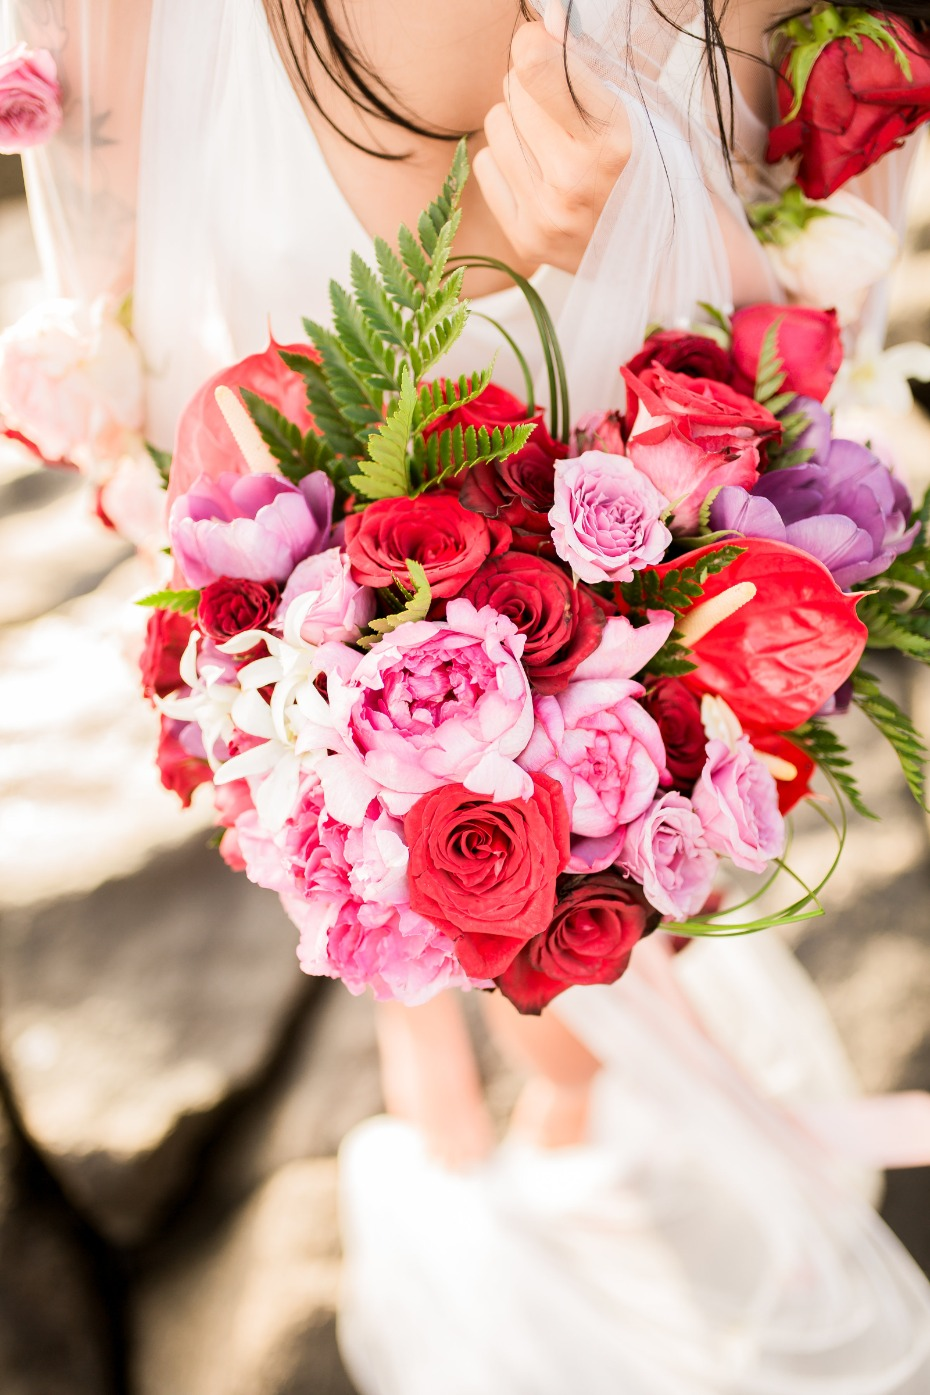 Heart shaped bouquet in pink and red